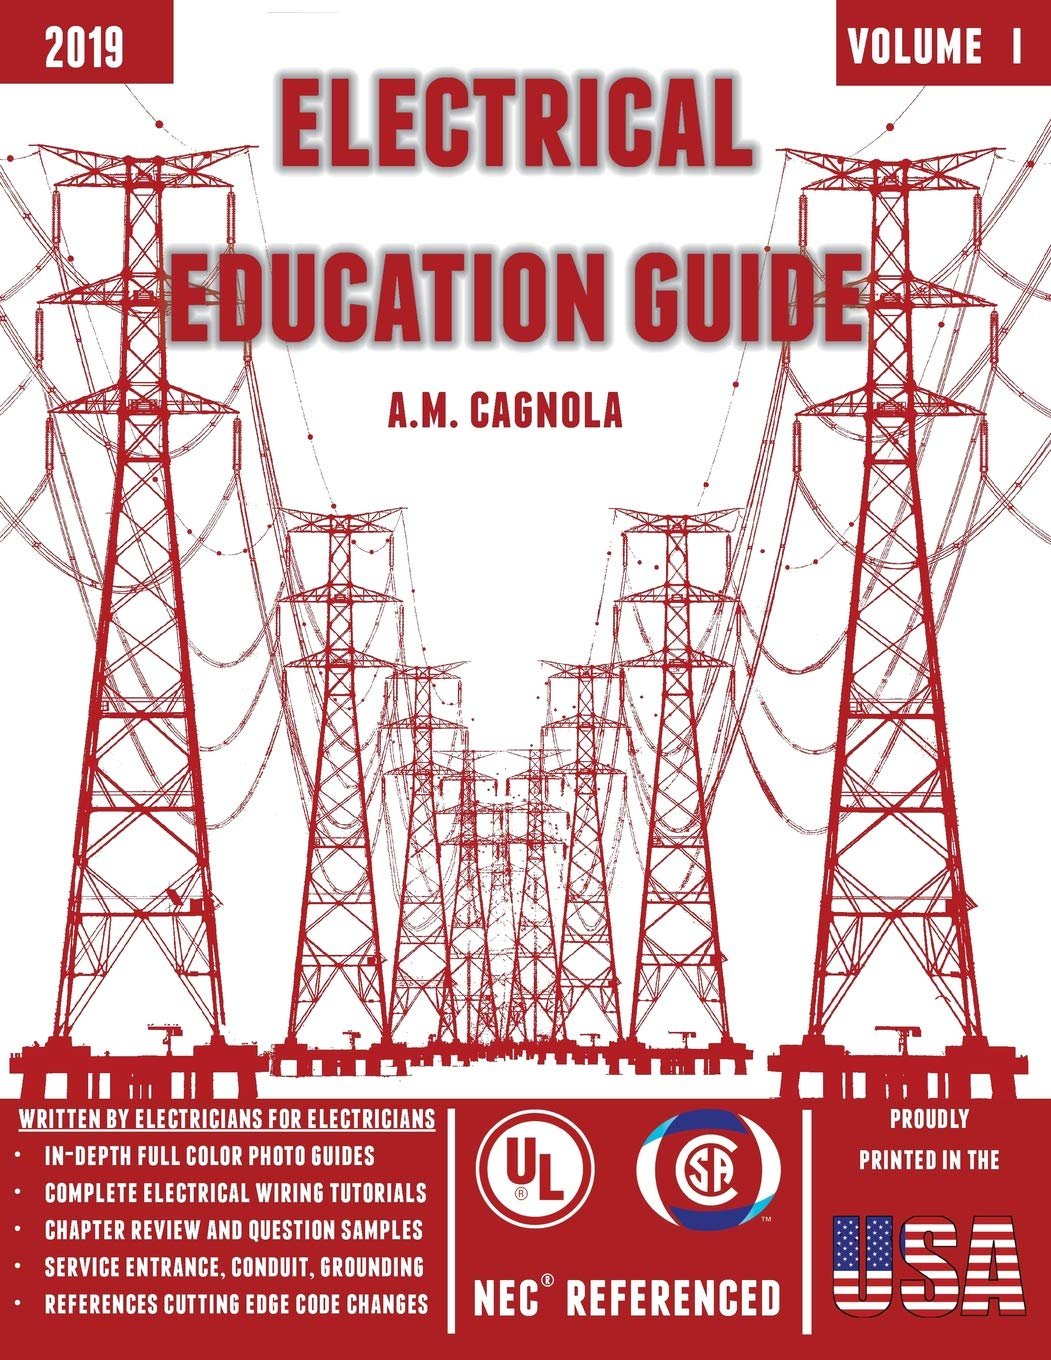 Electrical Education Guide: (Design, Wiring, and Installation ... on home electrical installation, electrical transformer installation, house electrical installation, building wiring installation, electrical conduit installation, emt conduit installation, electrical installation pdf, electrical outlet installation, electrical roof installation, electrical switch installation, electrical installation guide, electrical rough in inspection, electrical installation handbook, on-wall electrical installation, residential electrical installation, flooring installation, electrical panel, electrical weatherhead installation, electrical fixtures installation, outdoor electrical installation,